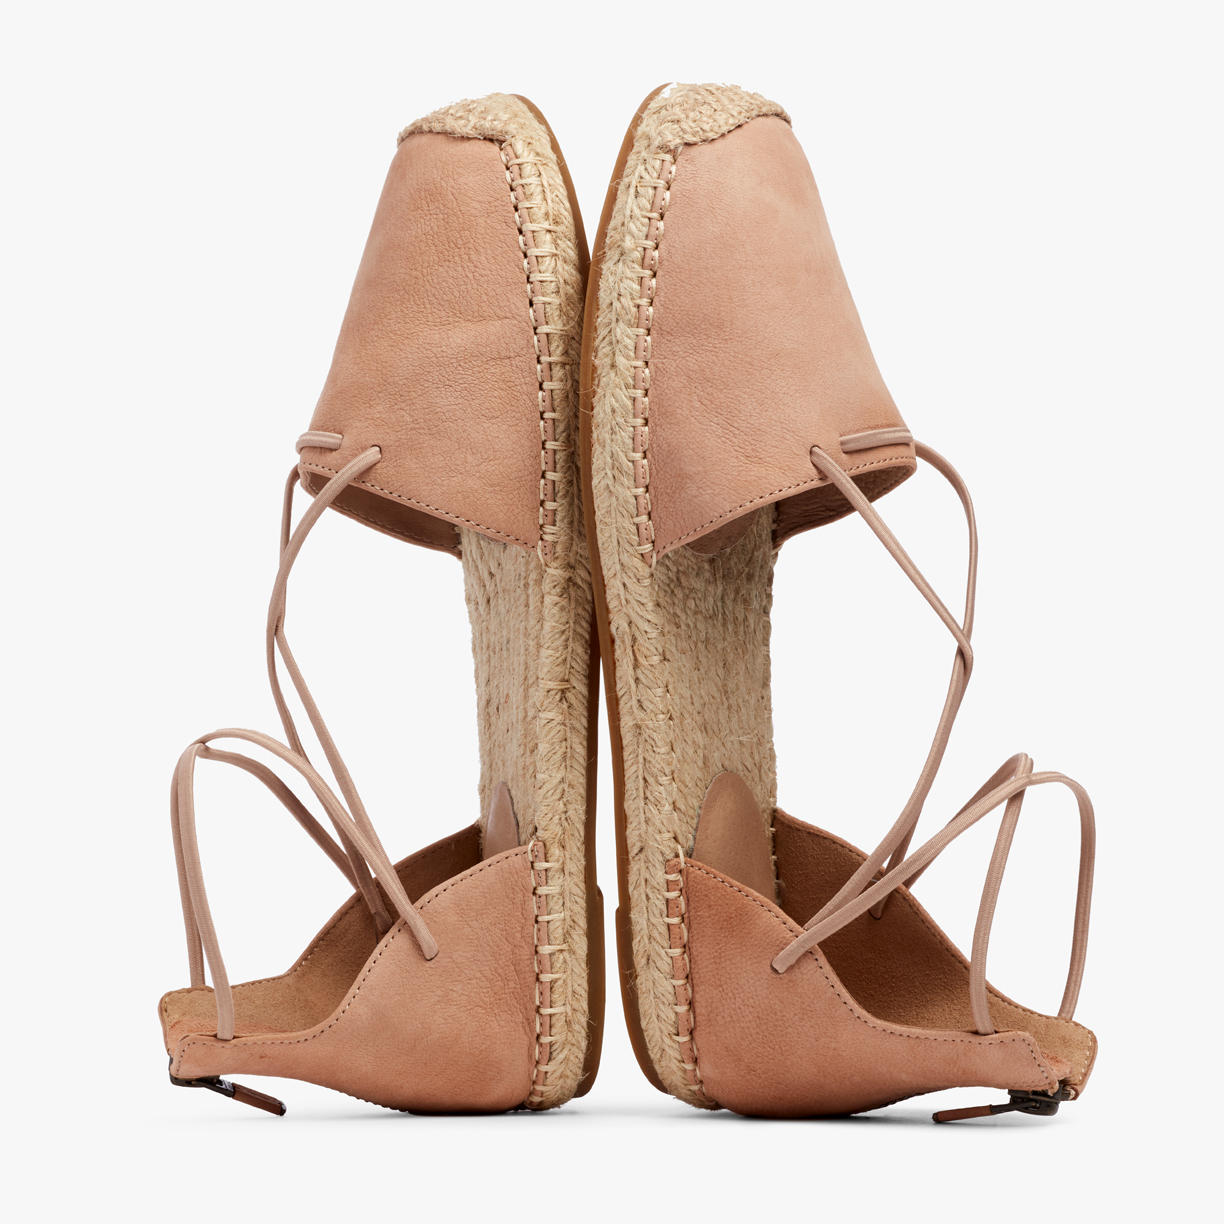 Eileen Fisher Women's Shoes Up to 60% Off